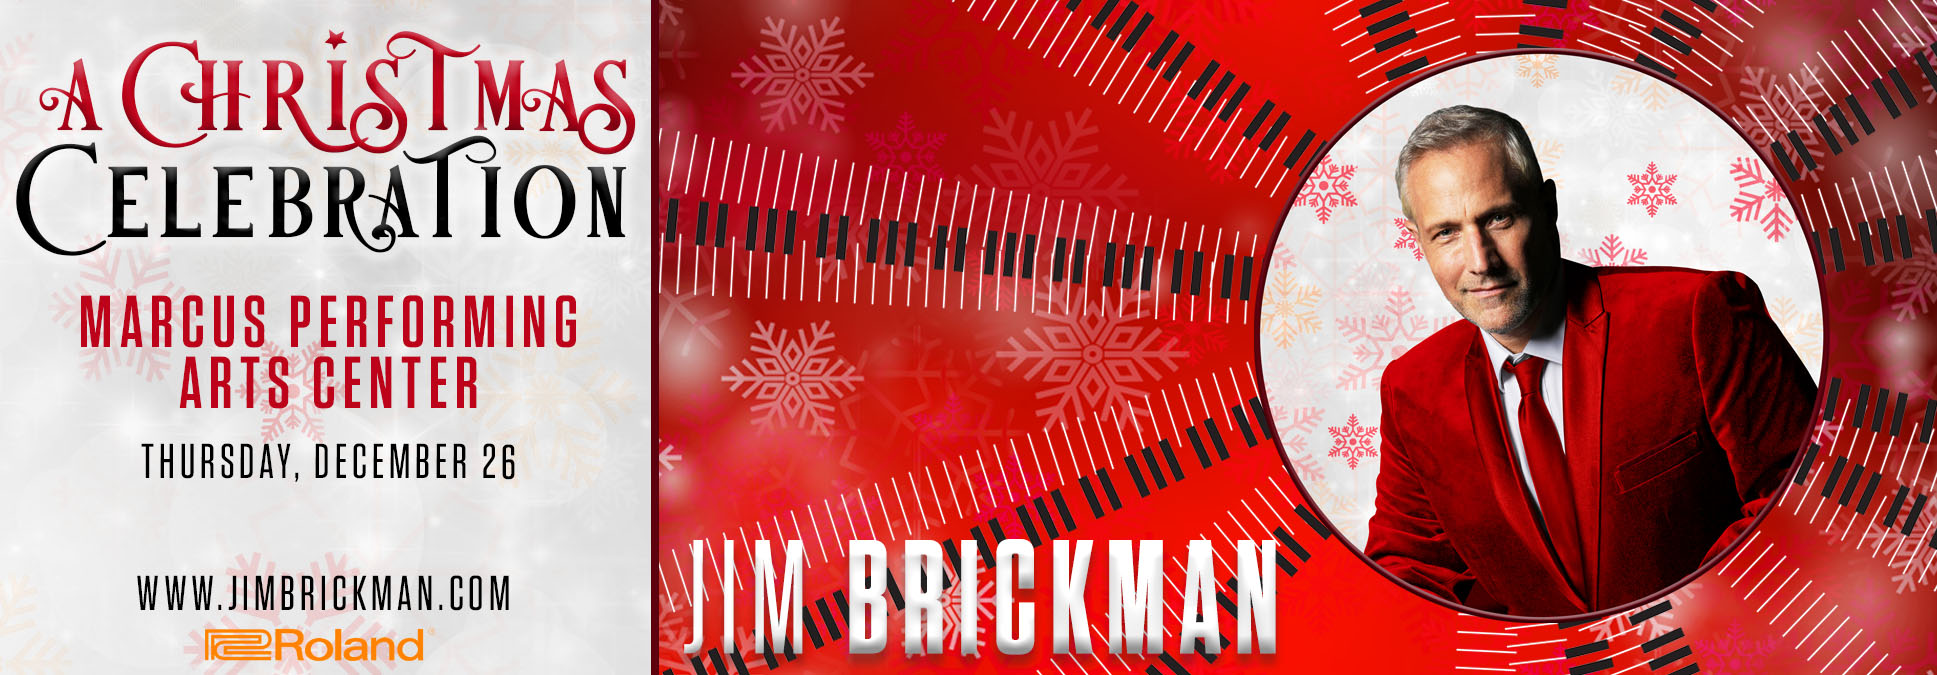 Jim Brickman at the Marcus Center in Mke